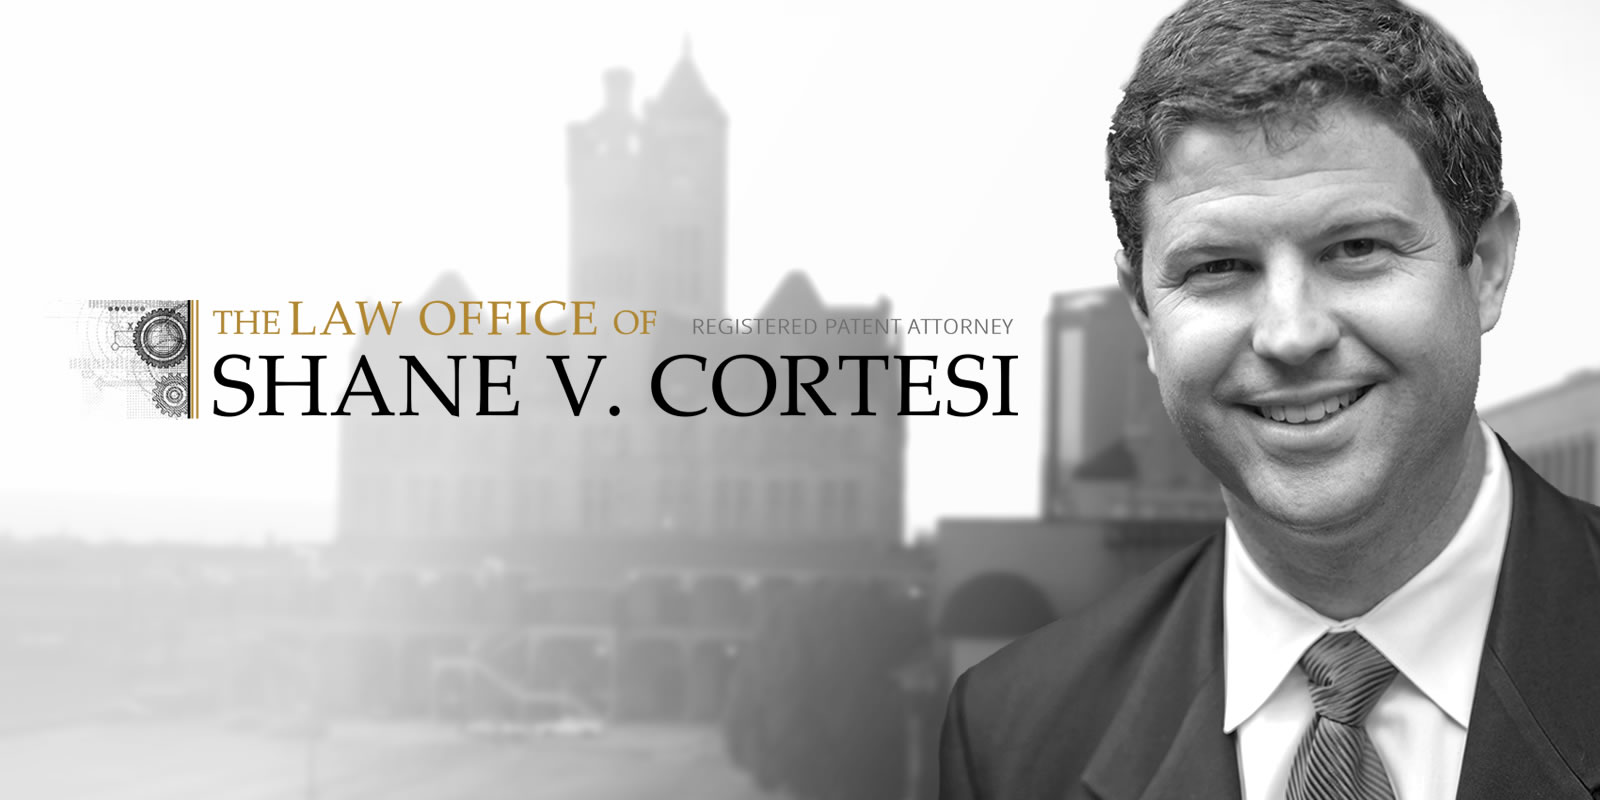 Contact The Law Office of Shane V. Cortesi in Nashville TN